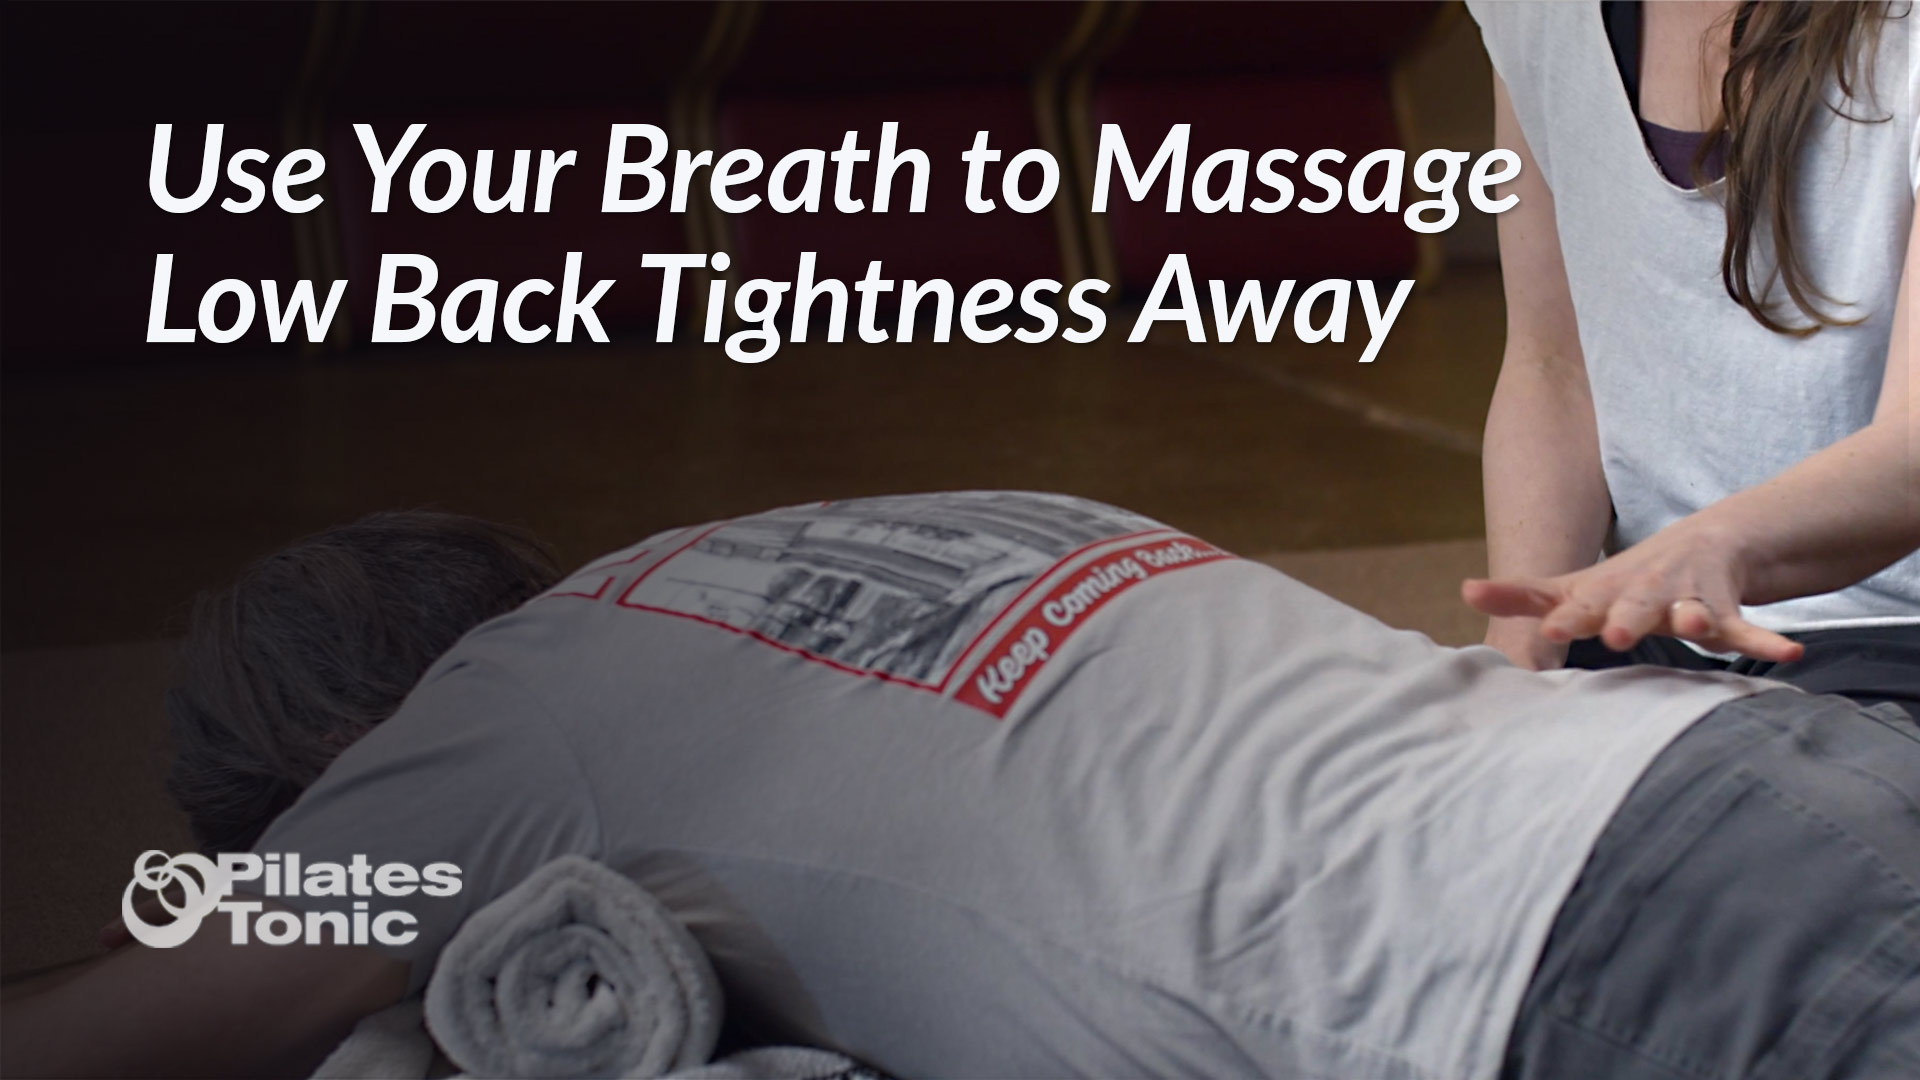 Use Your Breath to Massage Low Back Tightness Away